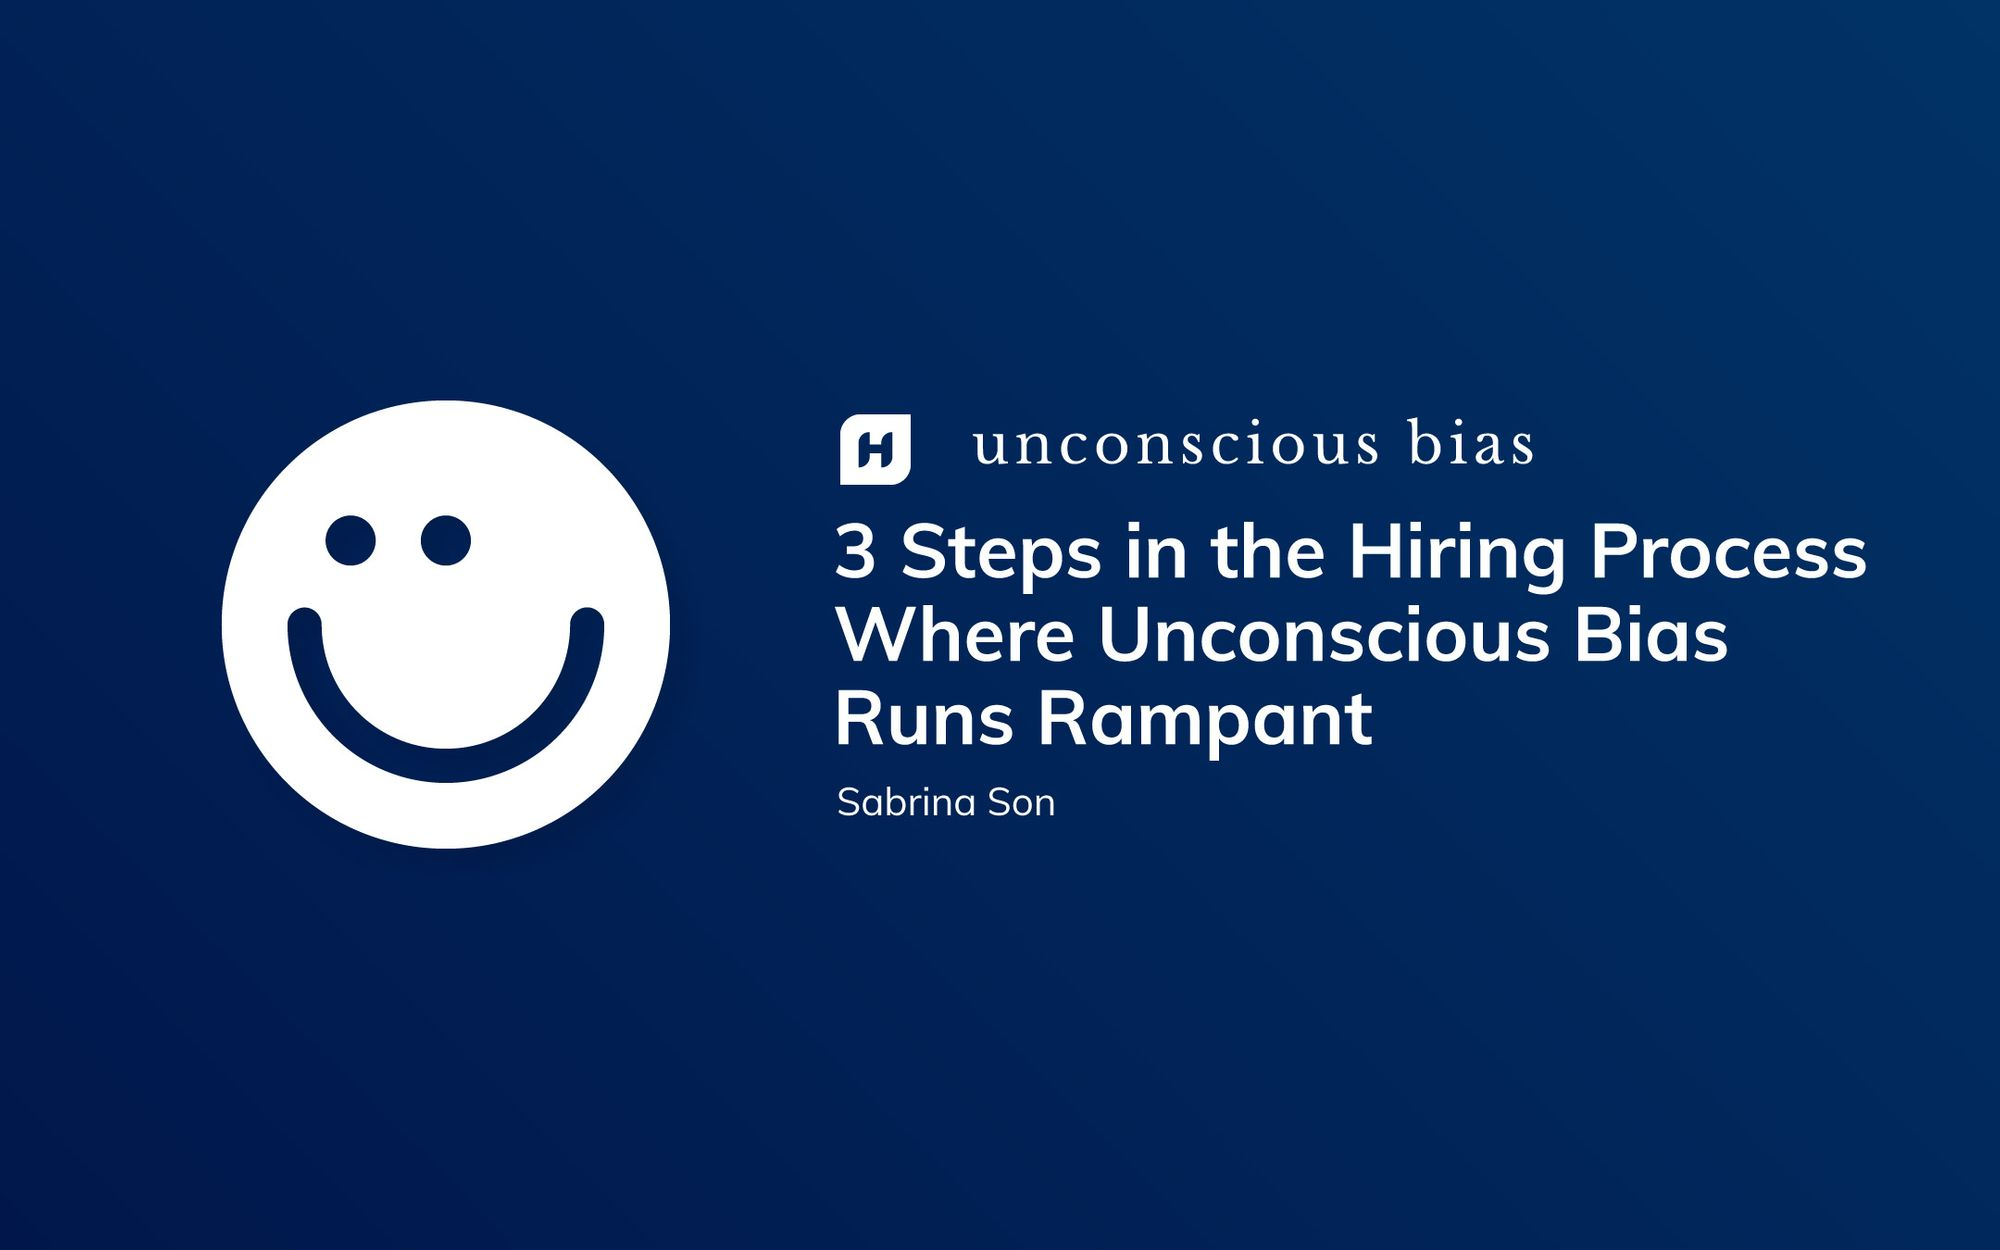 3 Steps in the Hiring Process Where Unconscious Bias Runs Rampant